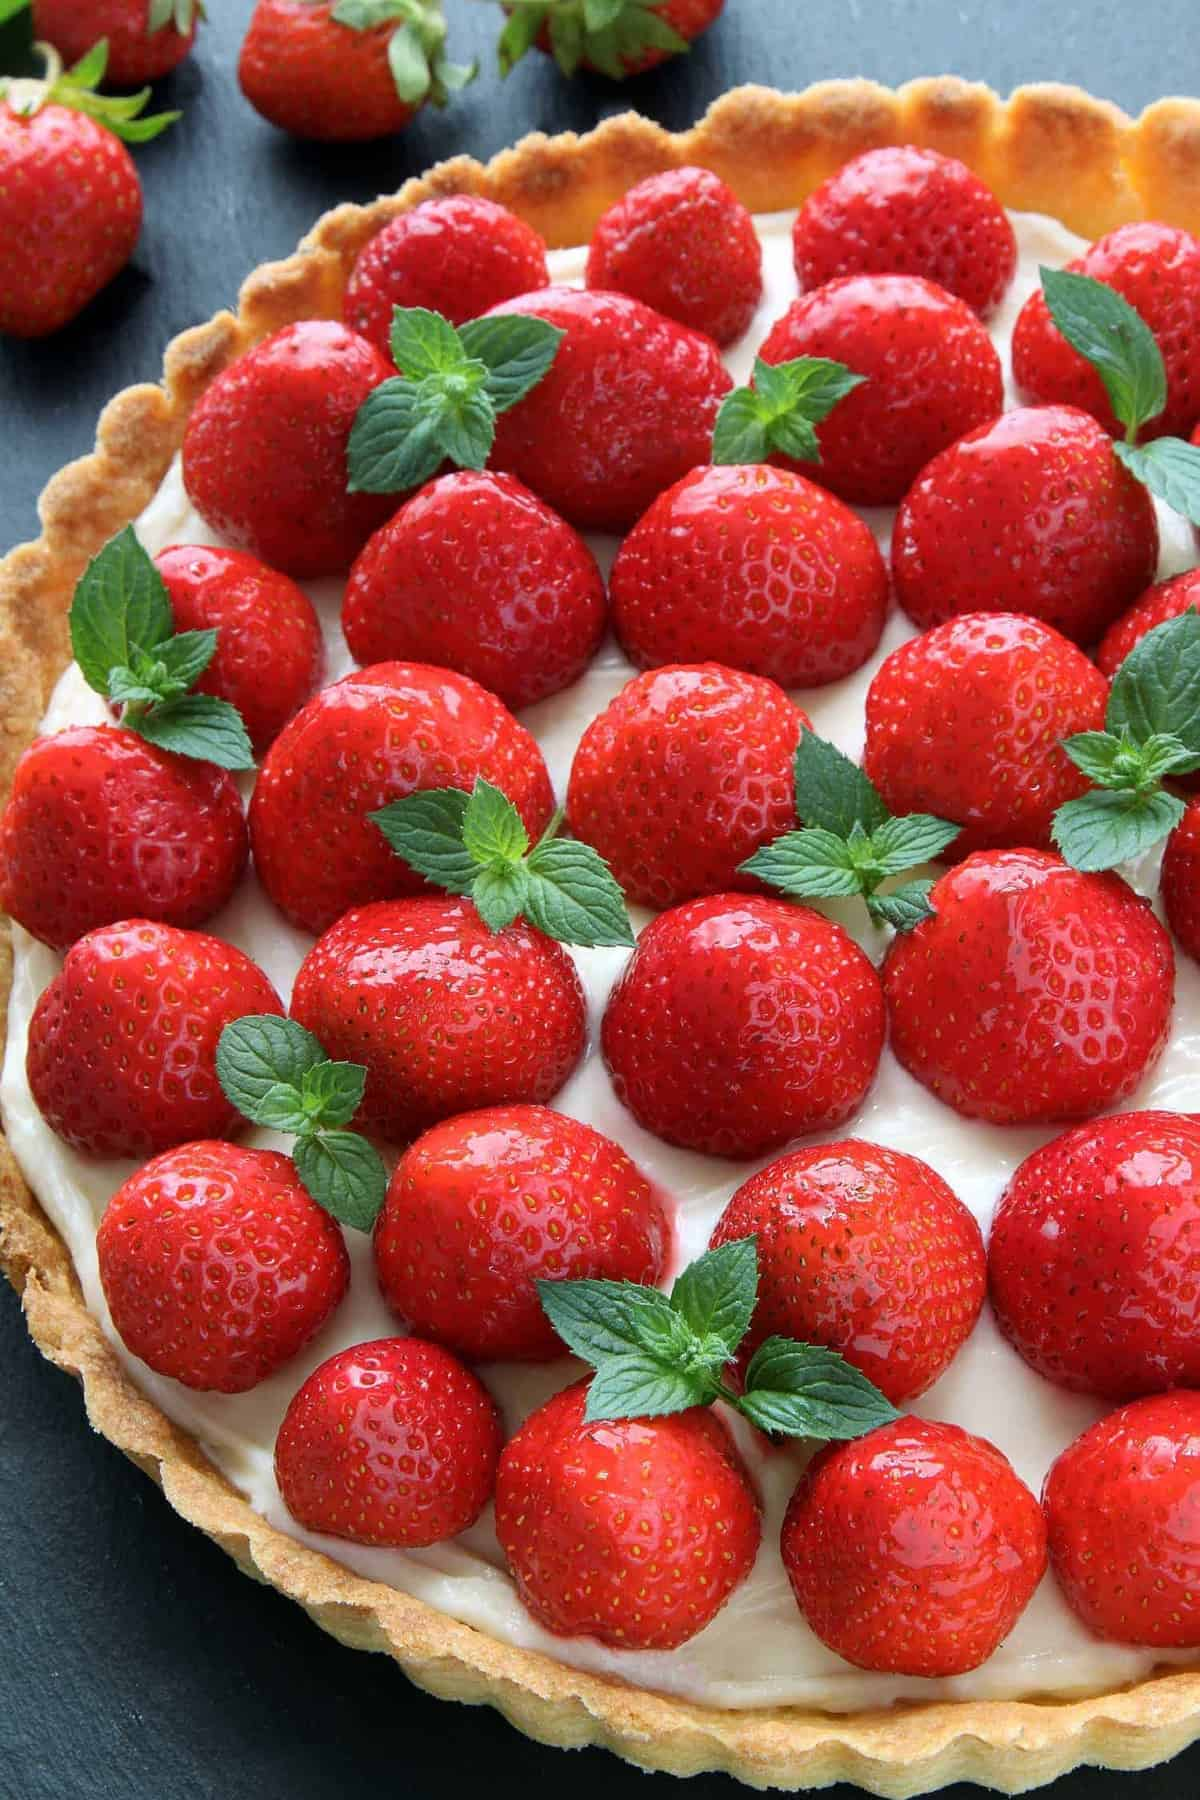 This Strawberry Cream Cheese Tart couldn't be easier or more delicious. Recipe contains a gluten-free option.